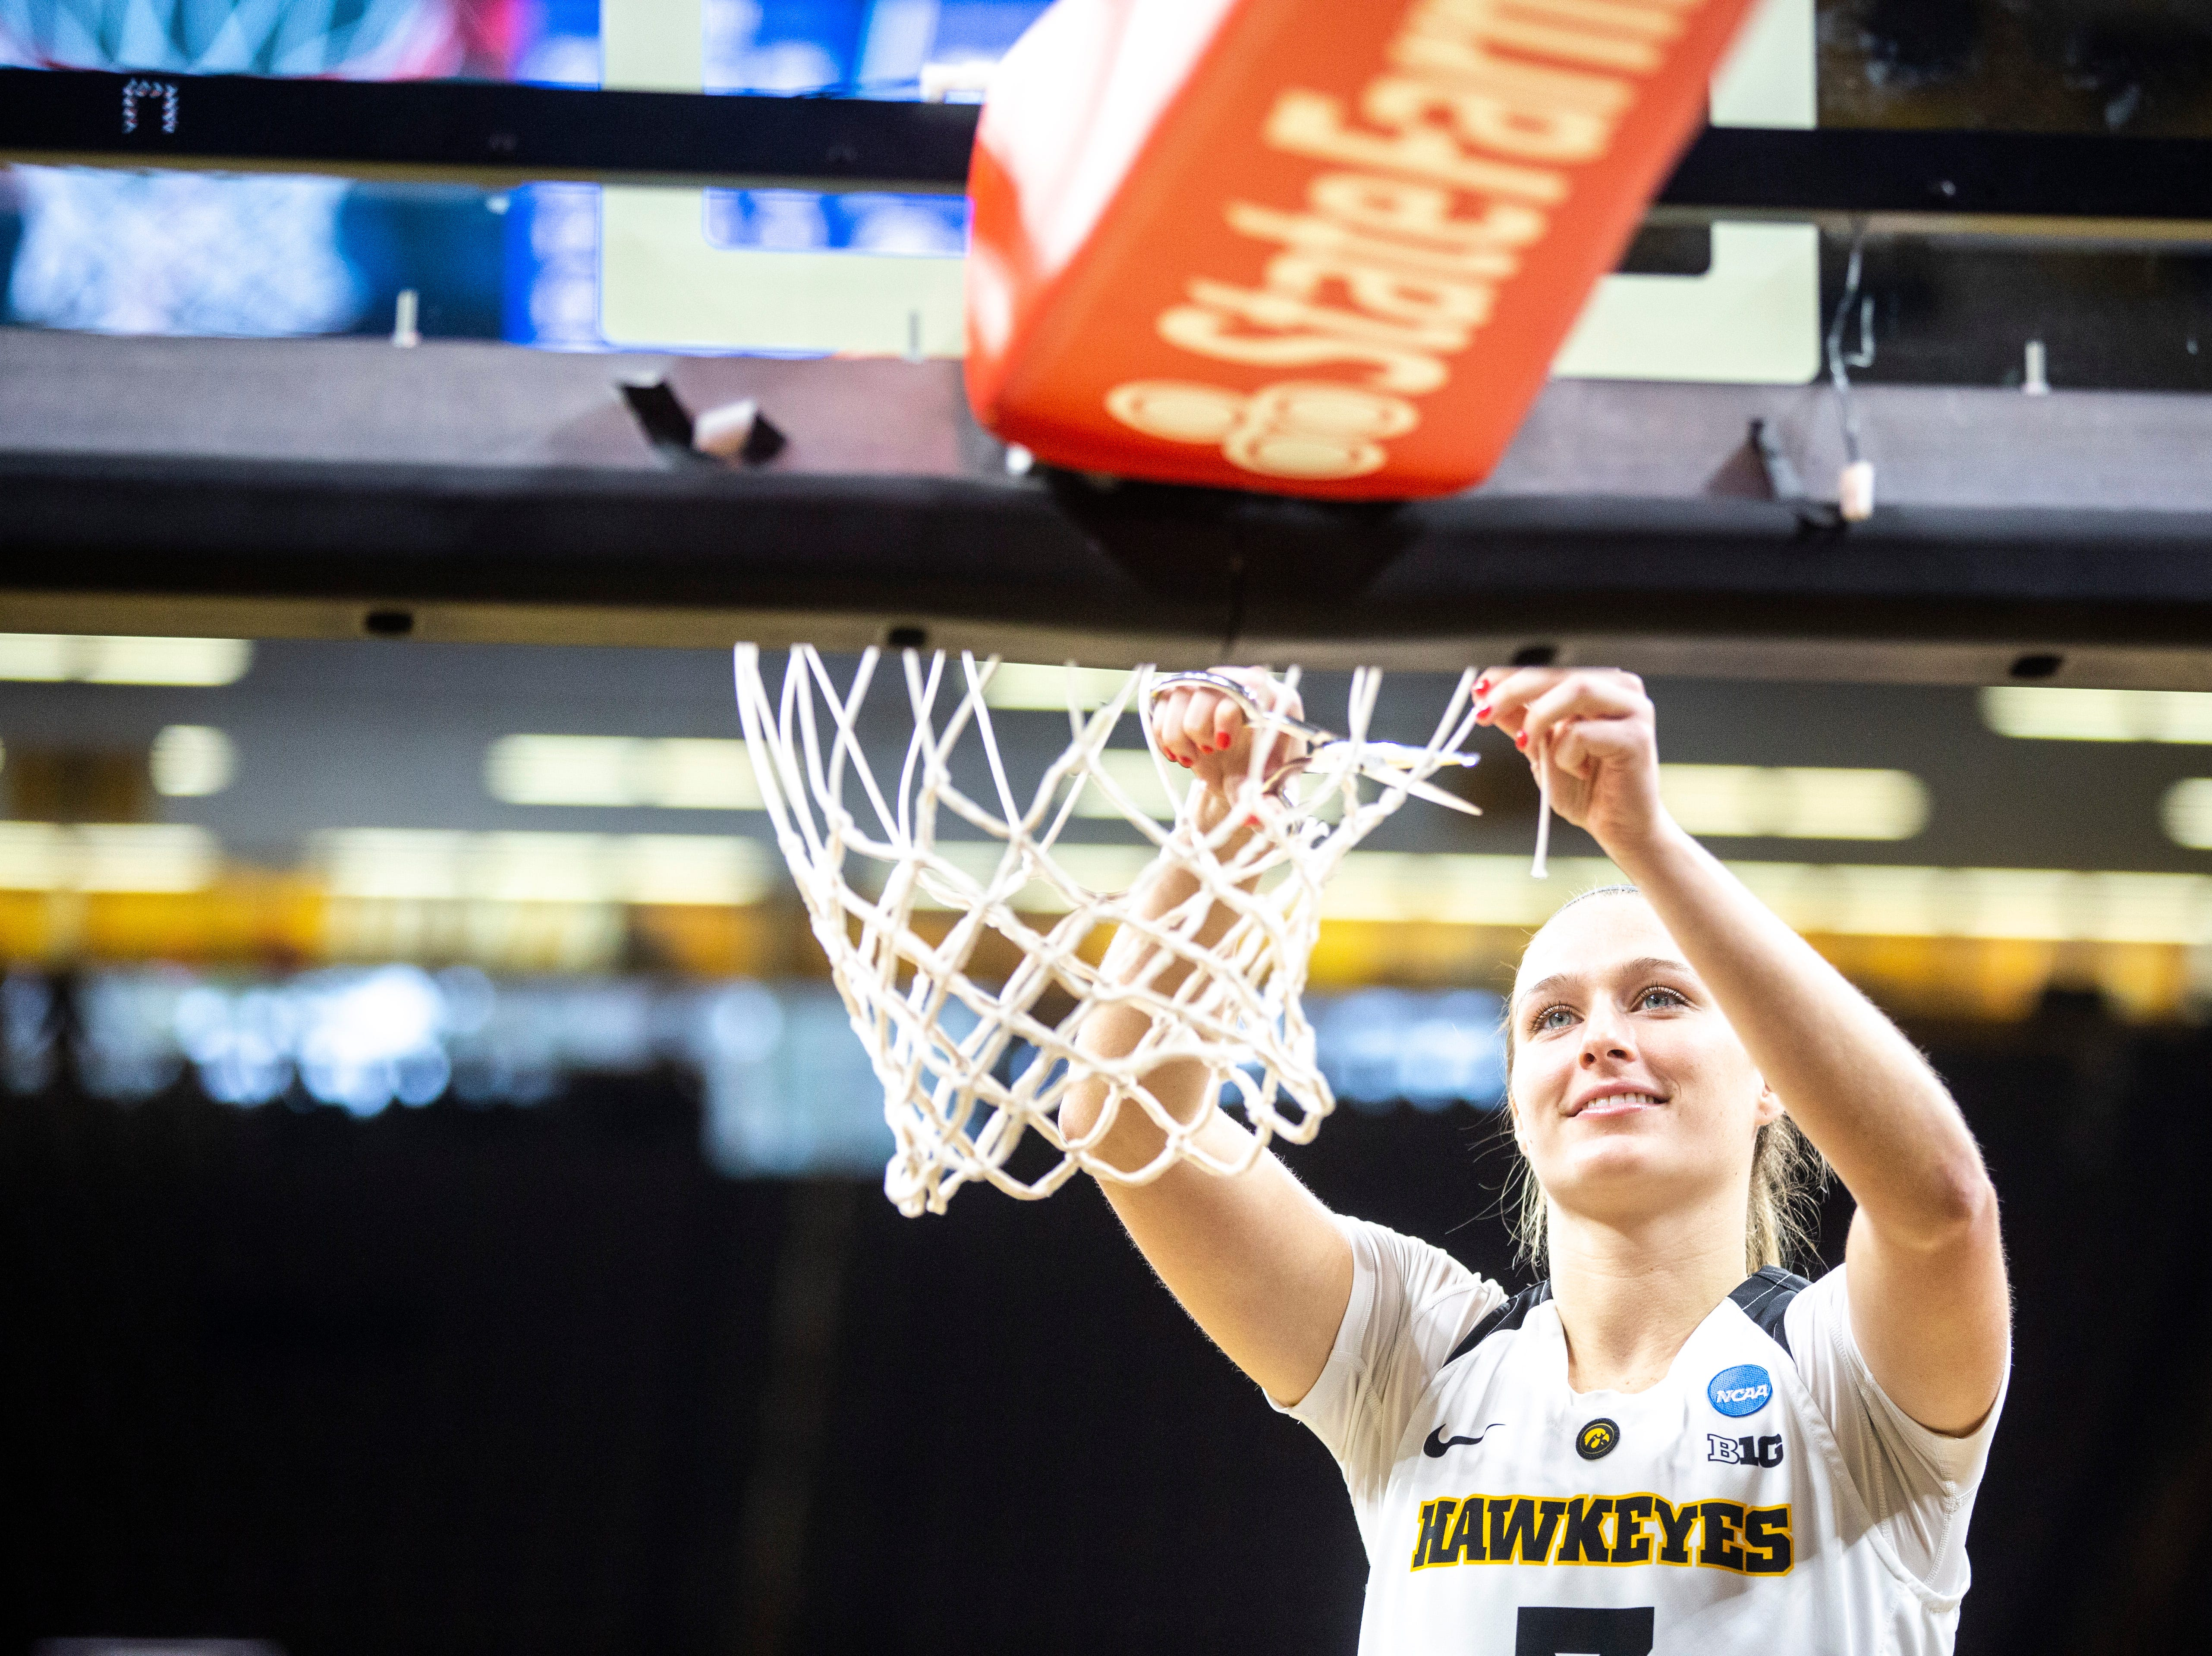 Iowa guard Makenzie Meyer (3) cuts down the nets on the court after a NCAA women's basketball tournament second-round game, Sunday, March 24, 2019, at Carver-Hawkeye Arena in Iowa City, Iowa.